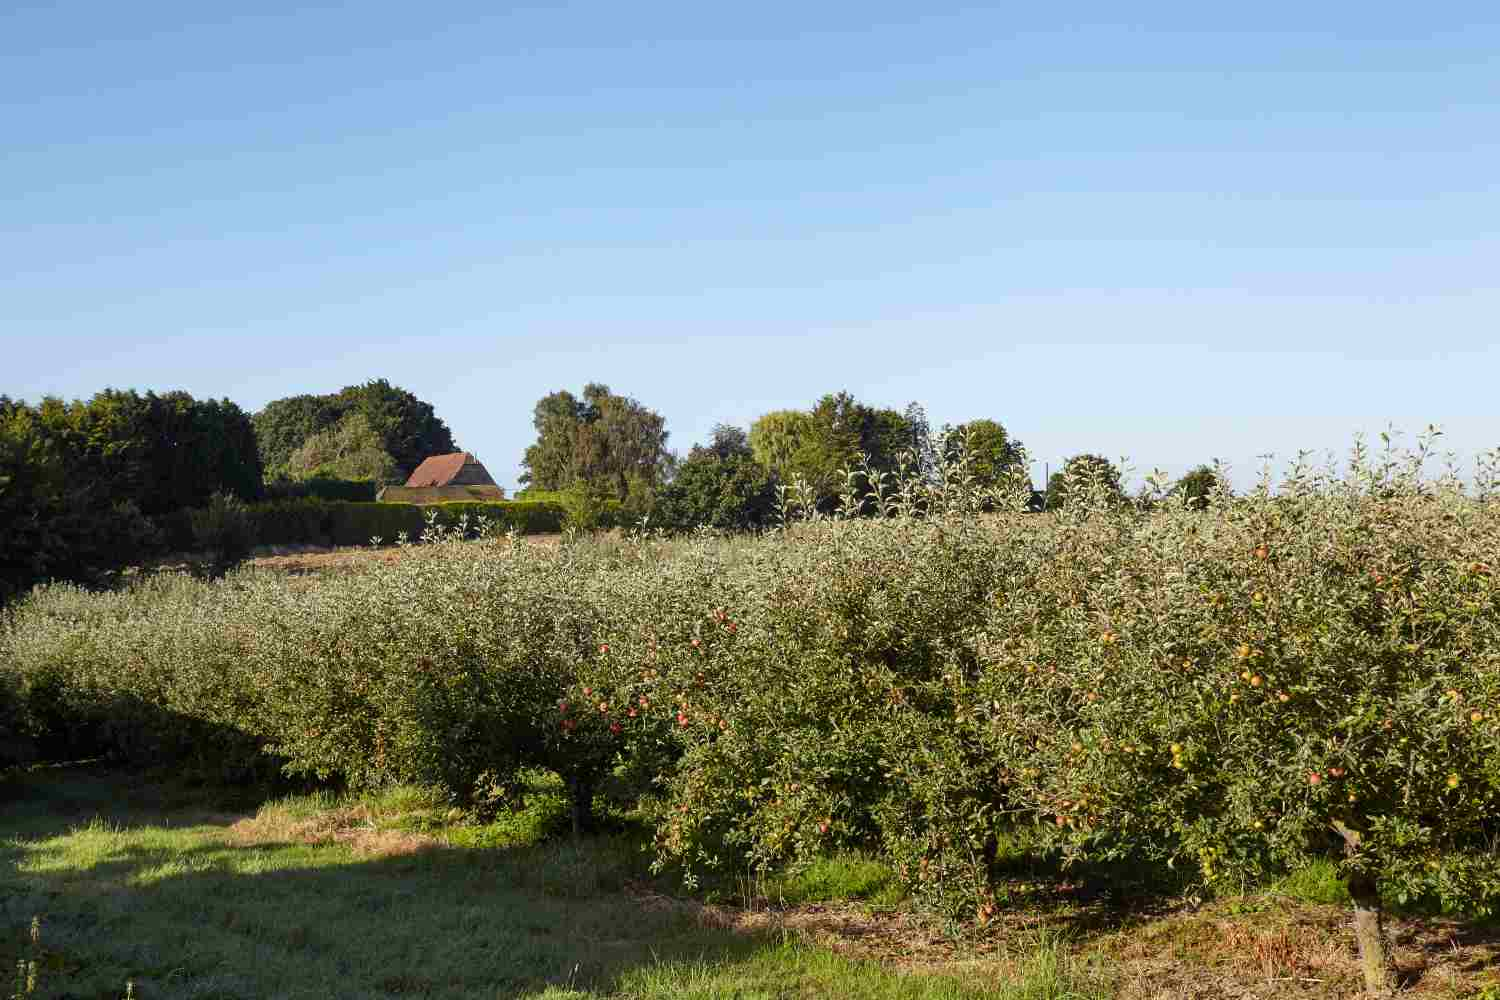 View of apple orchard